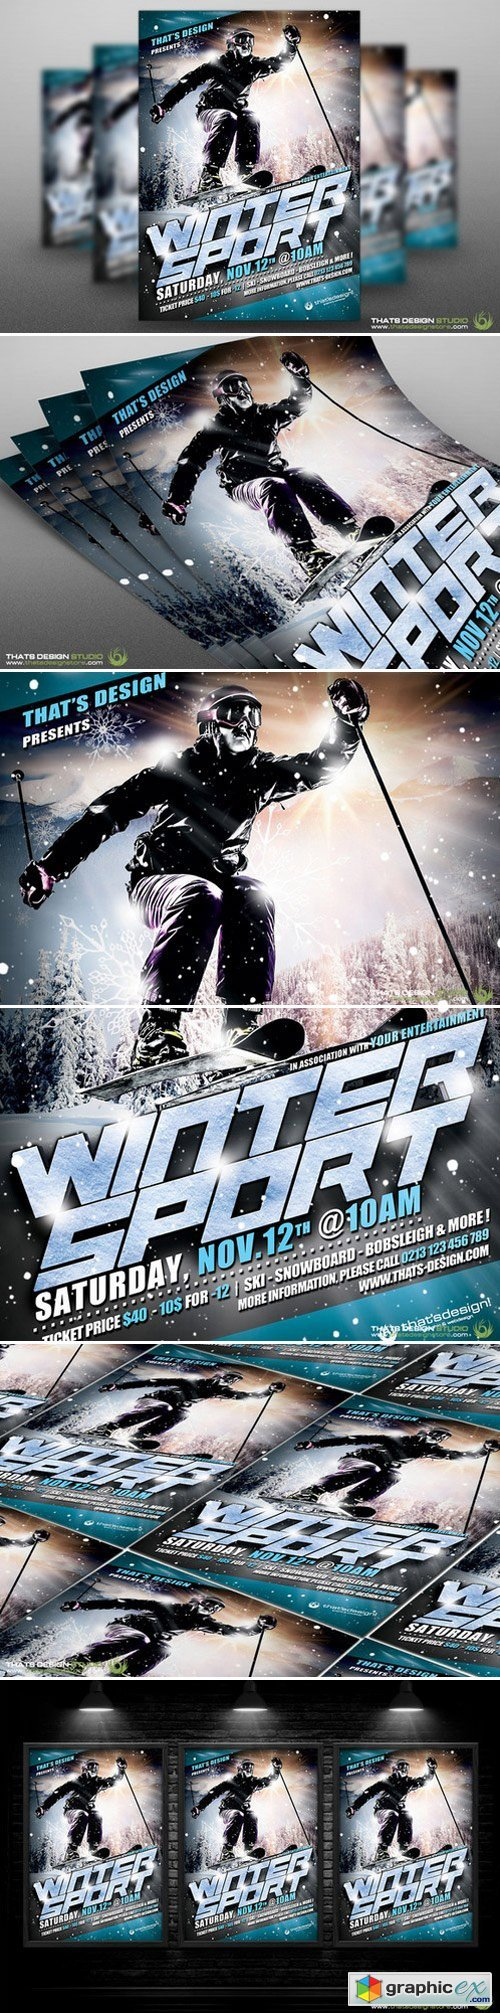 winter sports flyer template v1 free download vector stock image